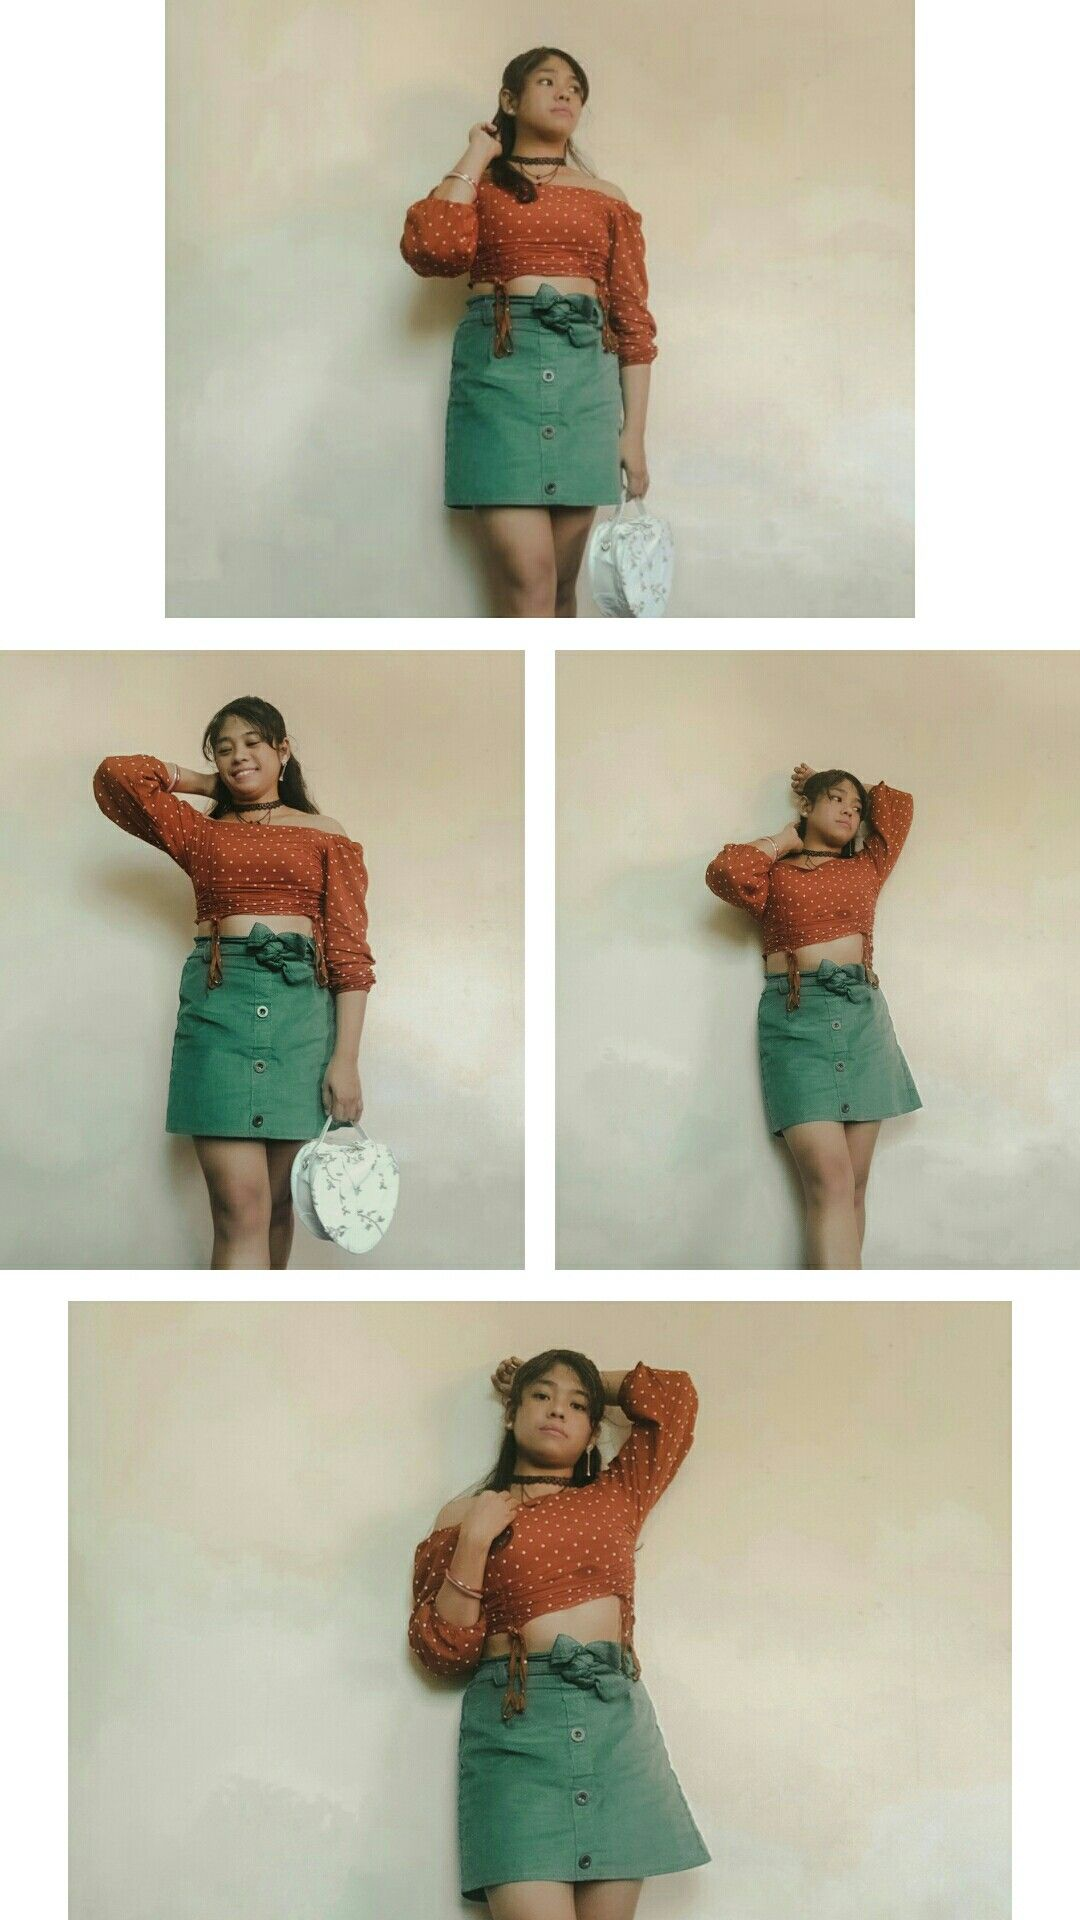 I'm kind of obsess rn with the orange and green #outfits combination. I never thought that it will actually good together - like the thoughts of me not makin it. It actually takes courage to do what you believe will give you joy - and who knows - you will find a better version of you after 🌾#positivity • #fashion #fashionph #personalstyle #ootdph #fashionblogger #styleblogger #fashioninspo